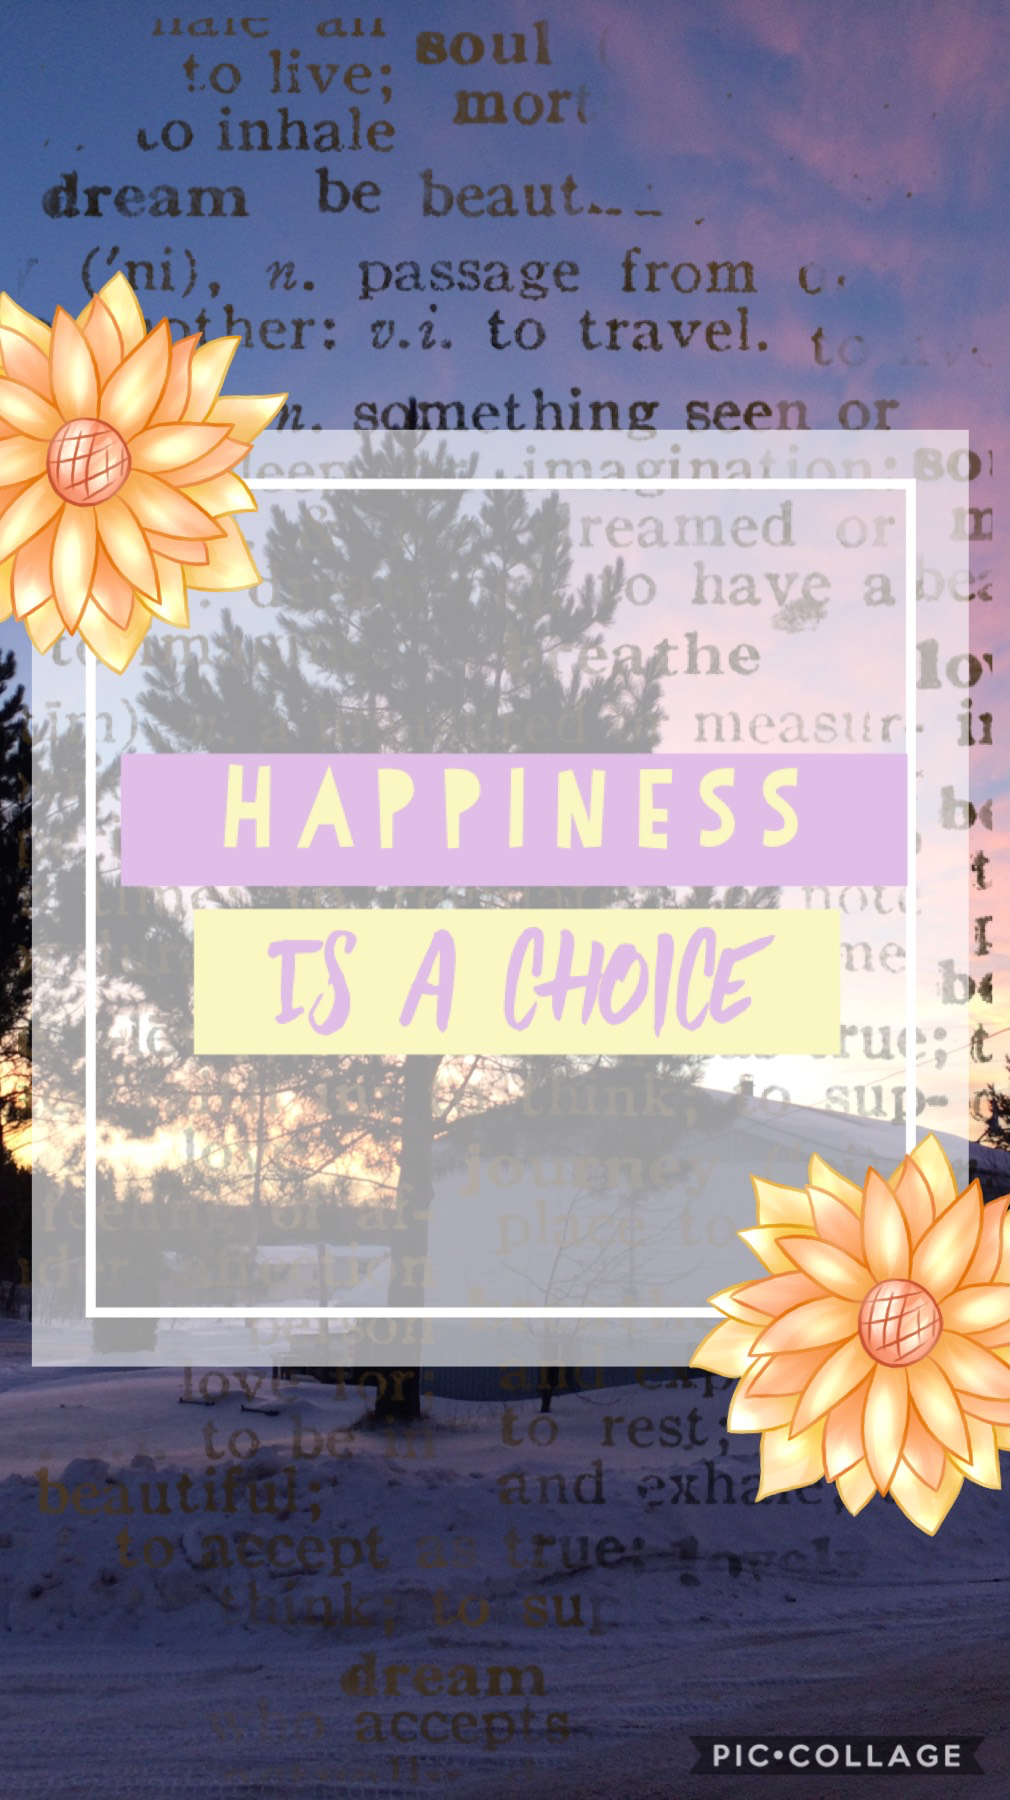 Choose to be happy, it makes life so much better!!💗